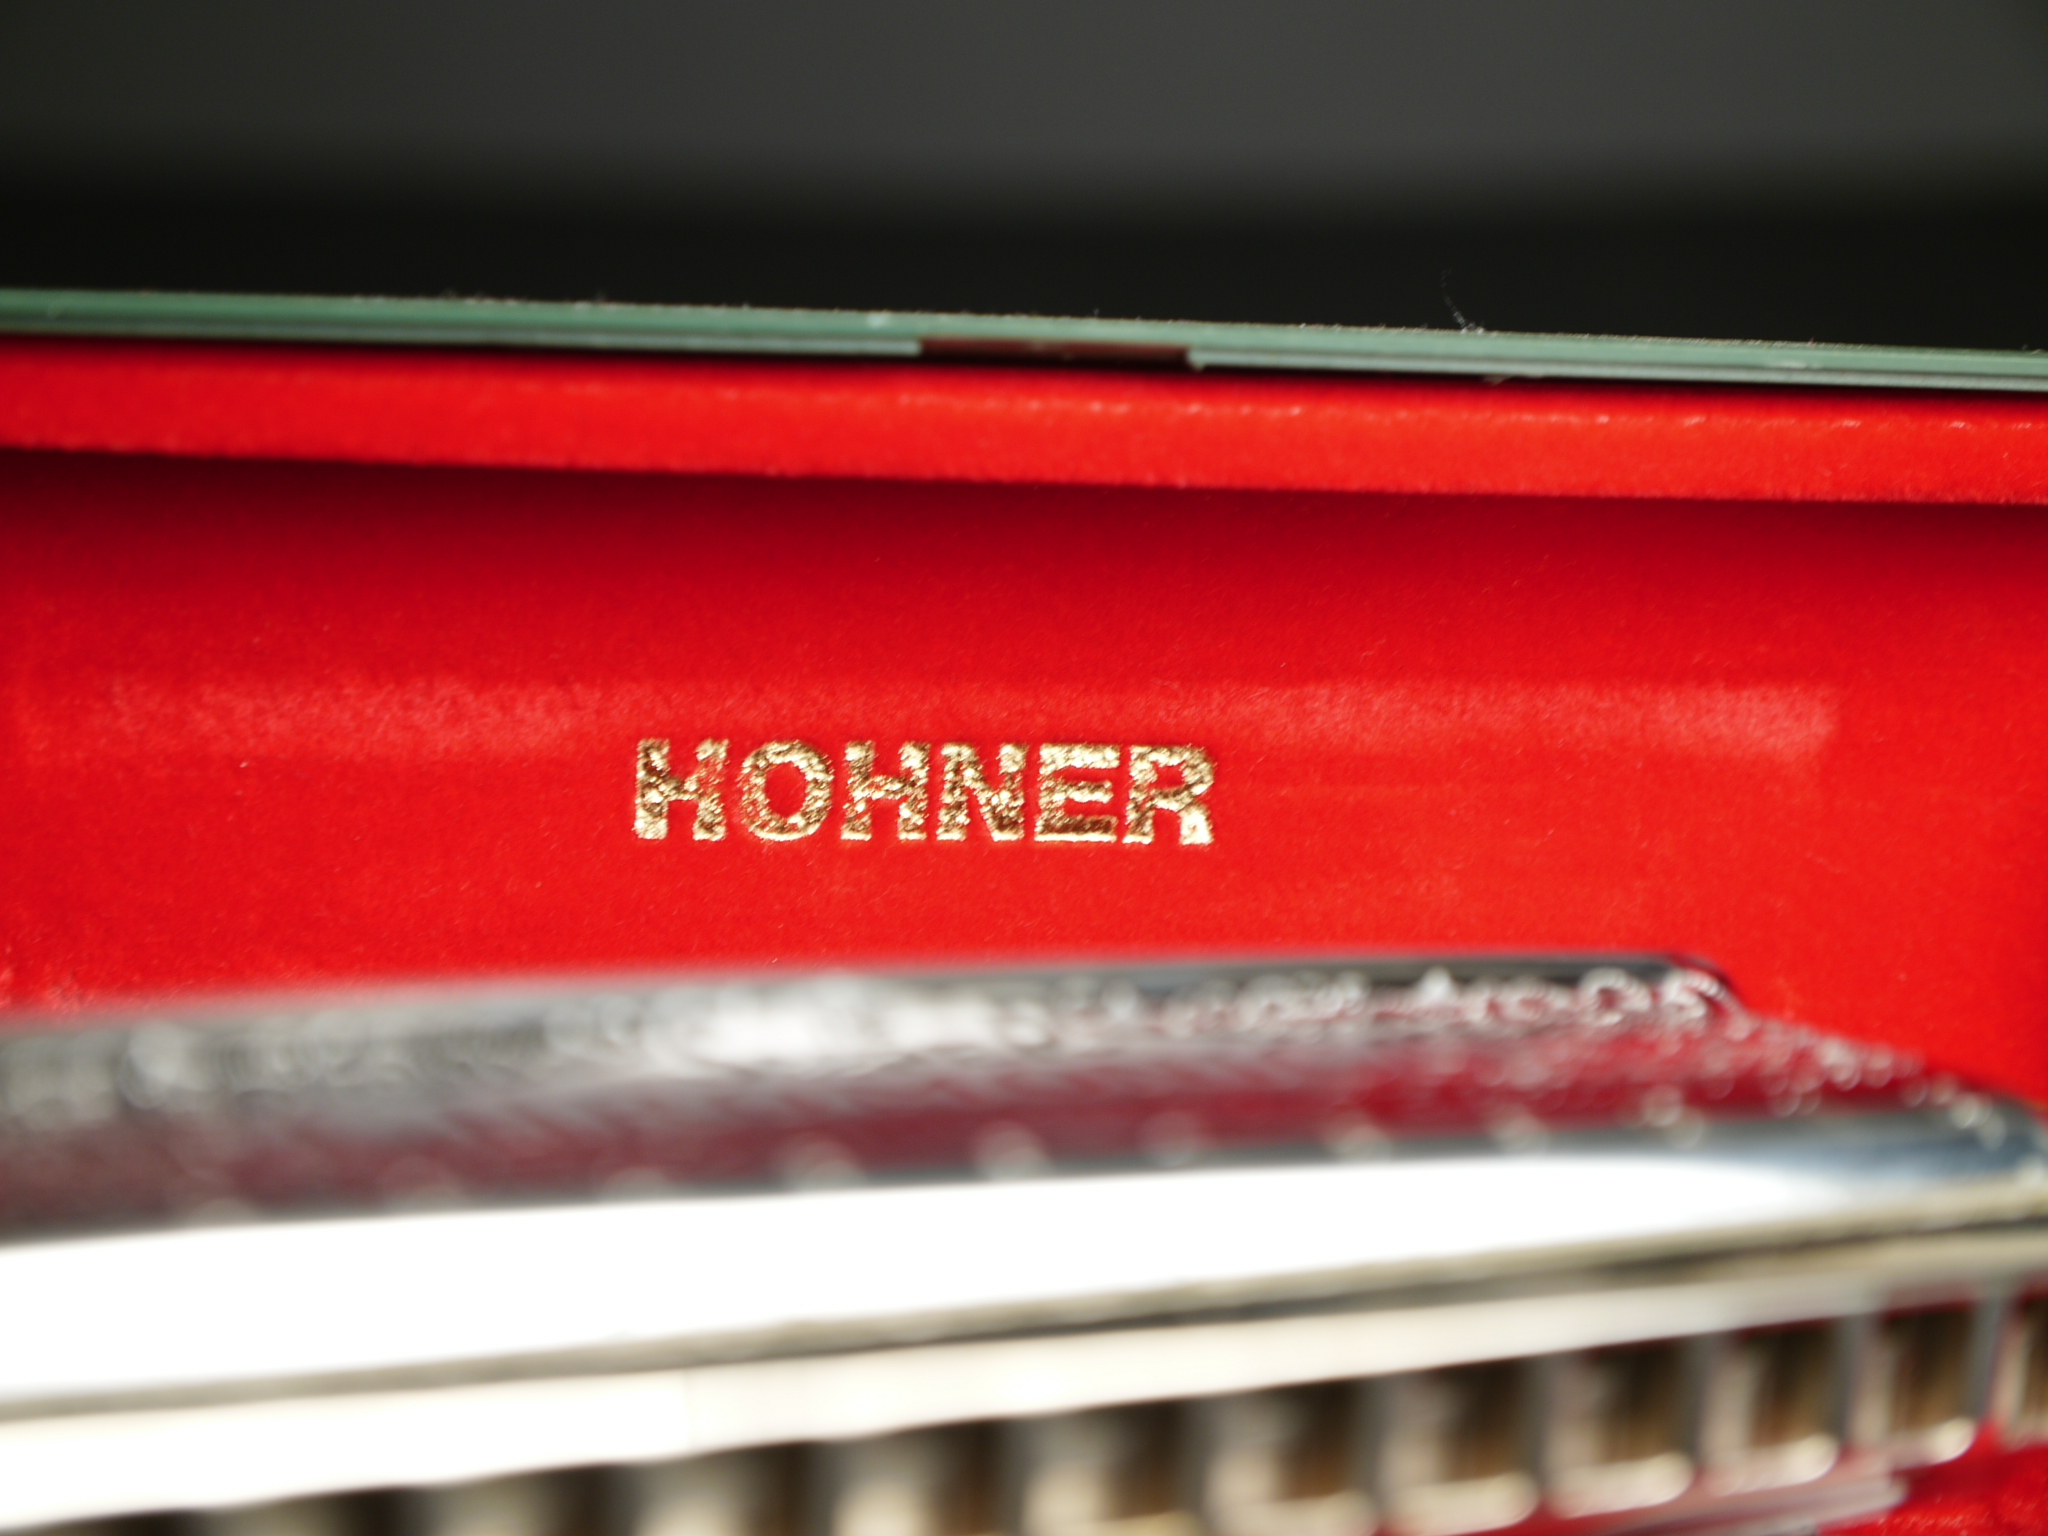 Hohner GmbH & Co. Chromonica 270